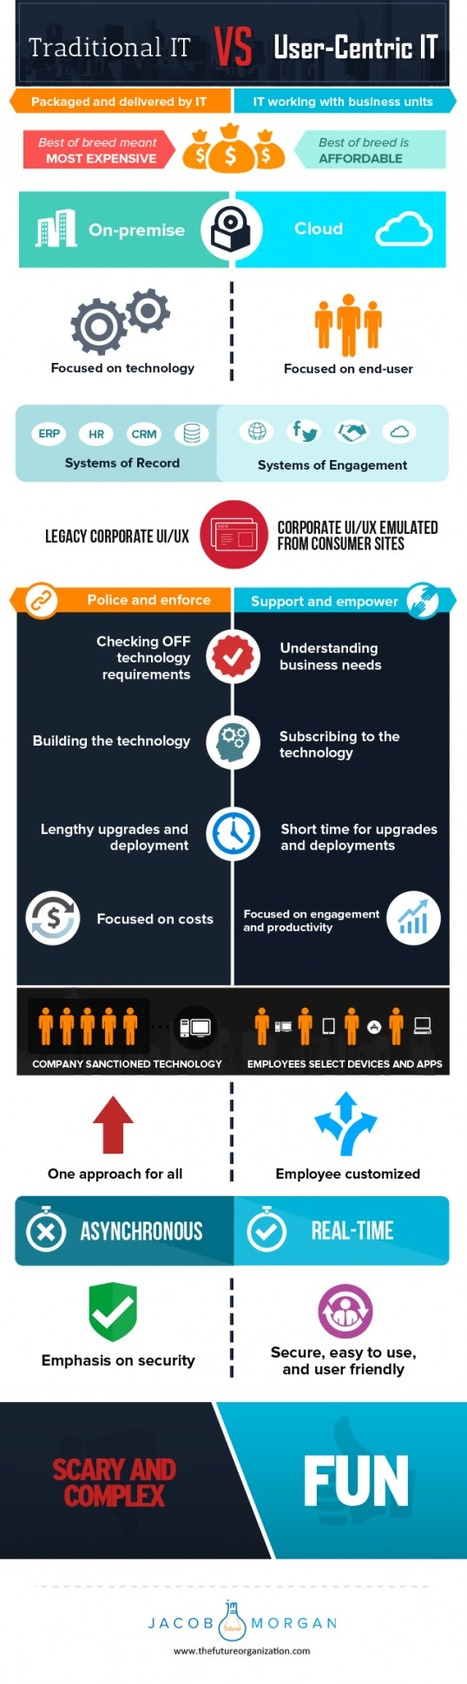 User-Centric IT: Putting People Before Technology | End User Computing | Scoop.it